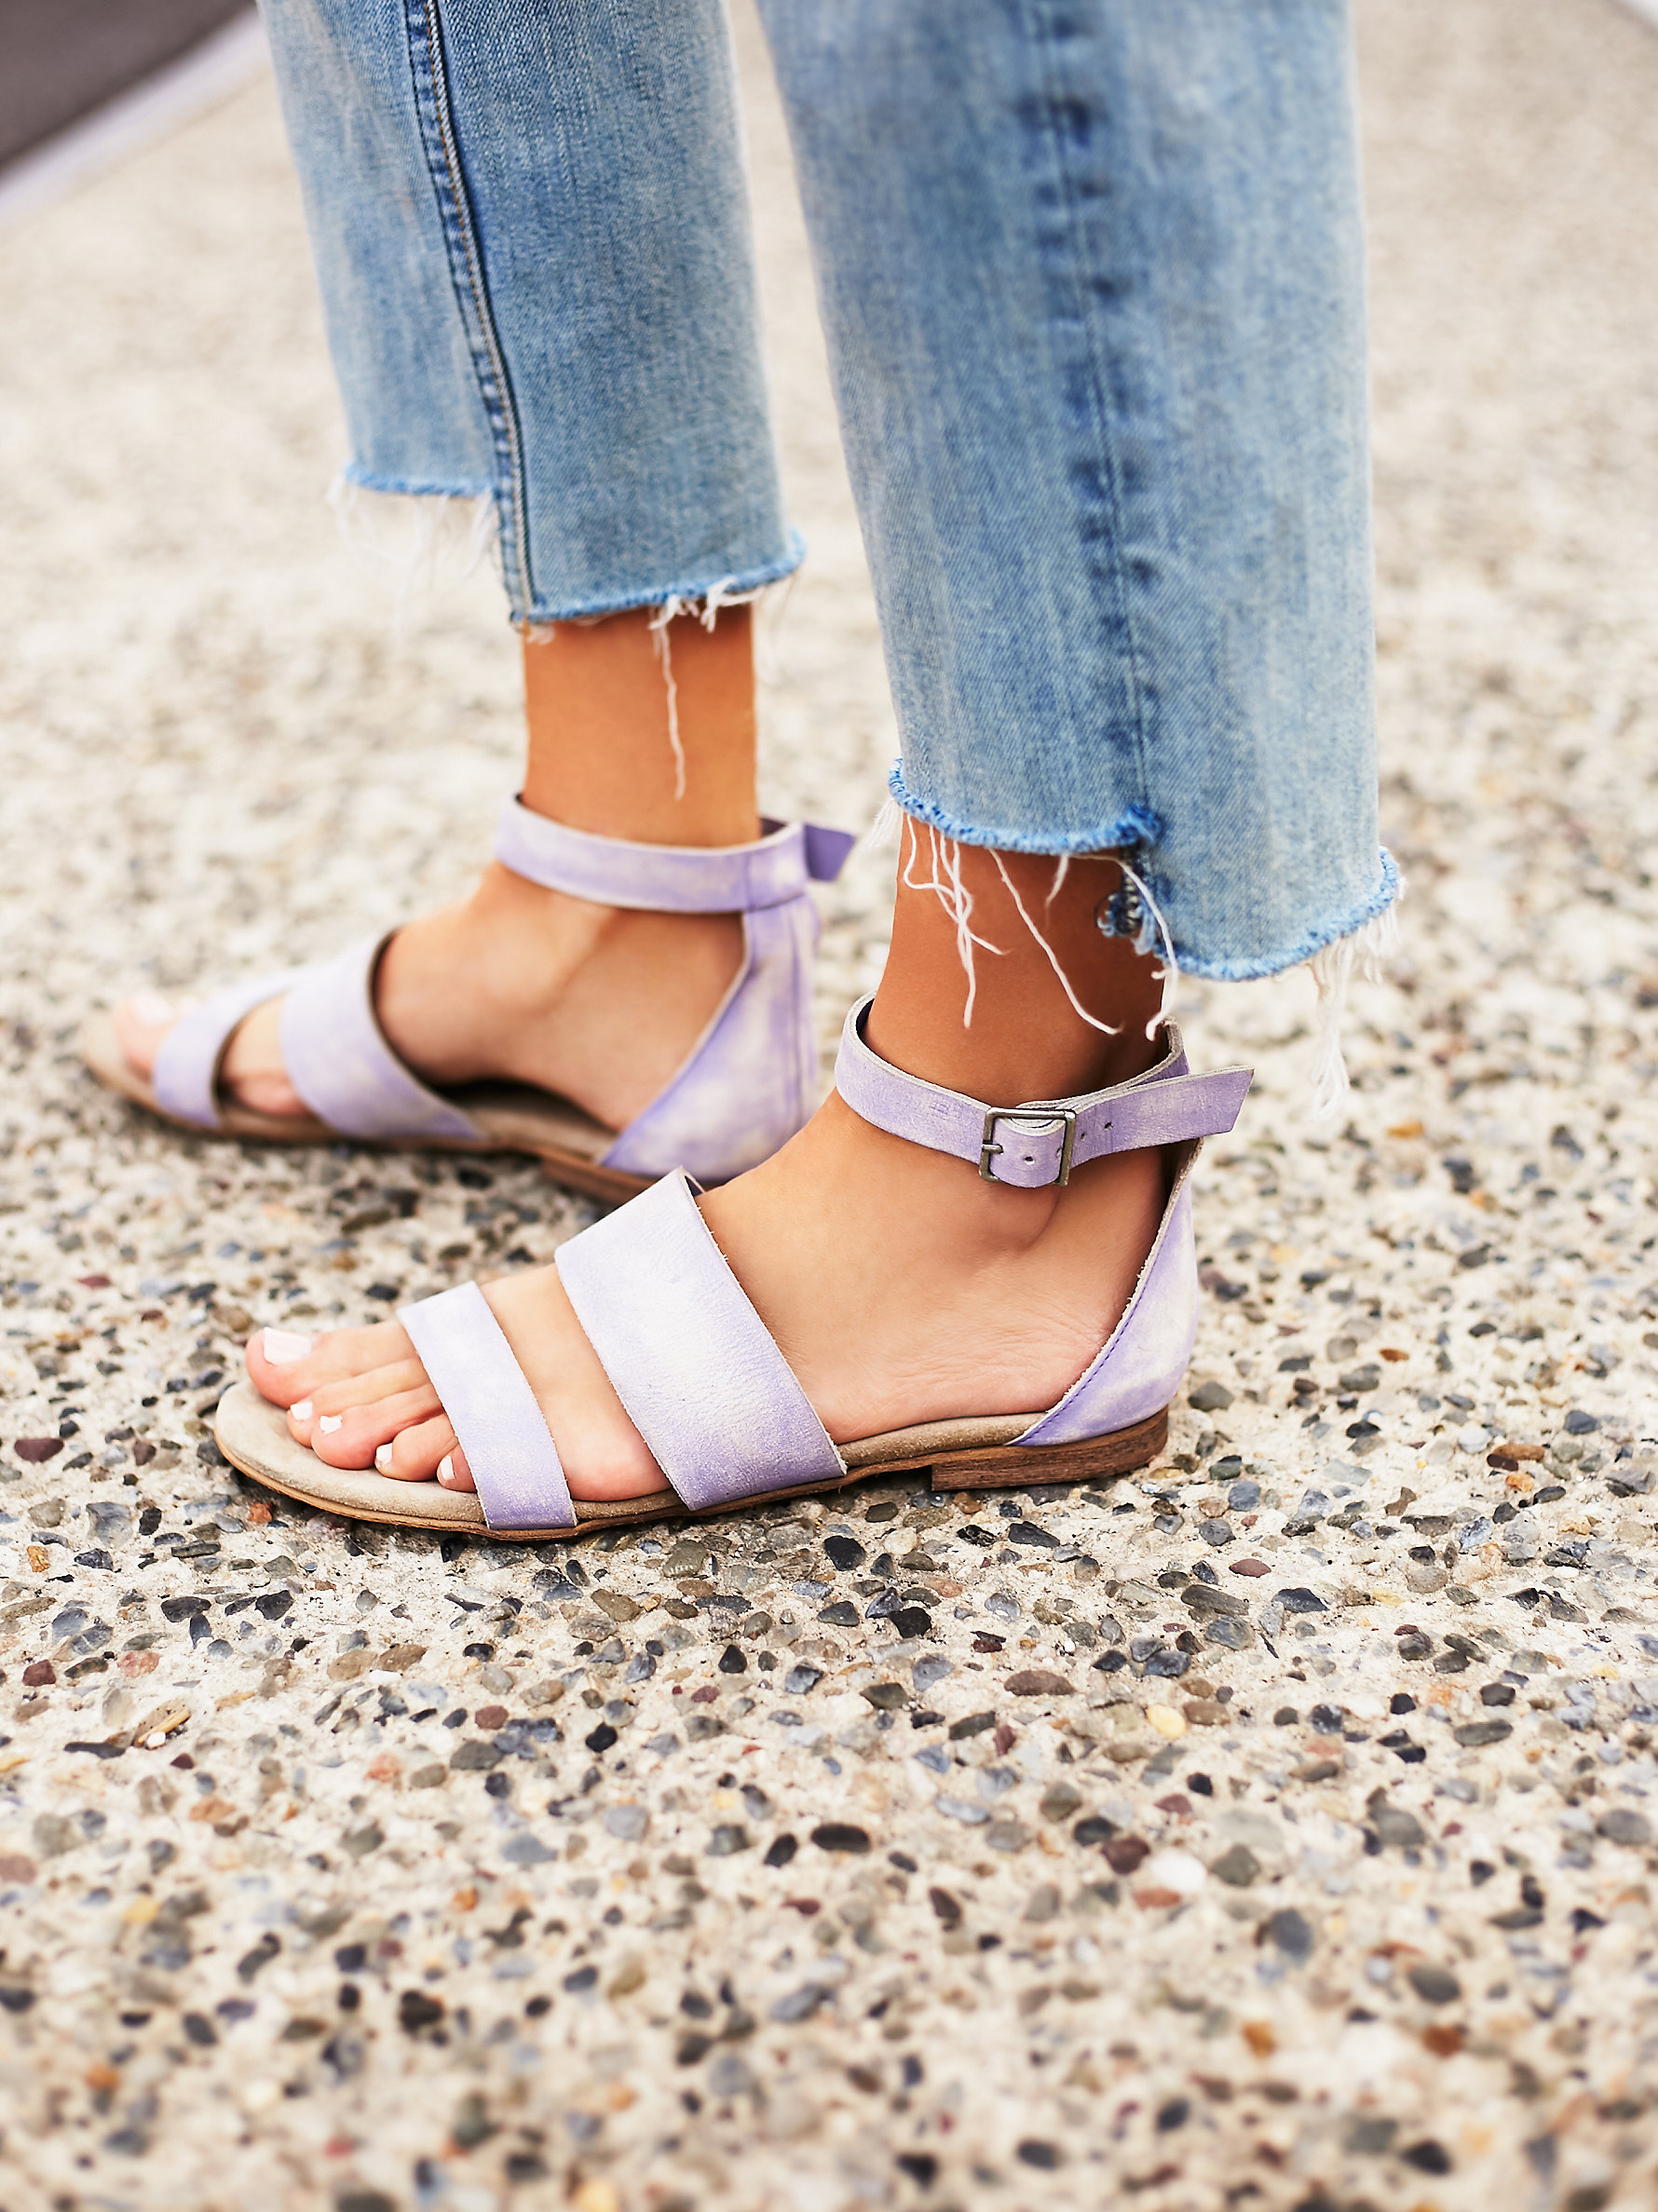 Free People's Sexy Strappy Sandals - FP Collection Crowe Distressed Sandal at Free People Clothing Boutique